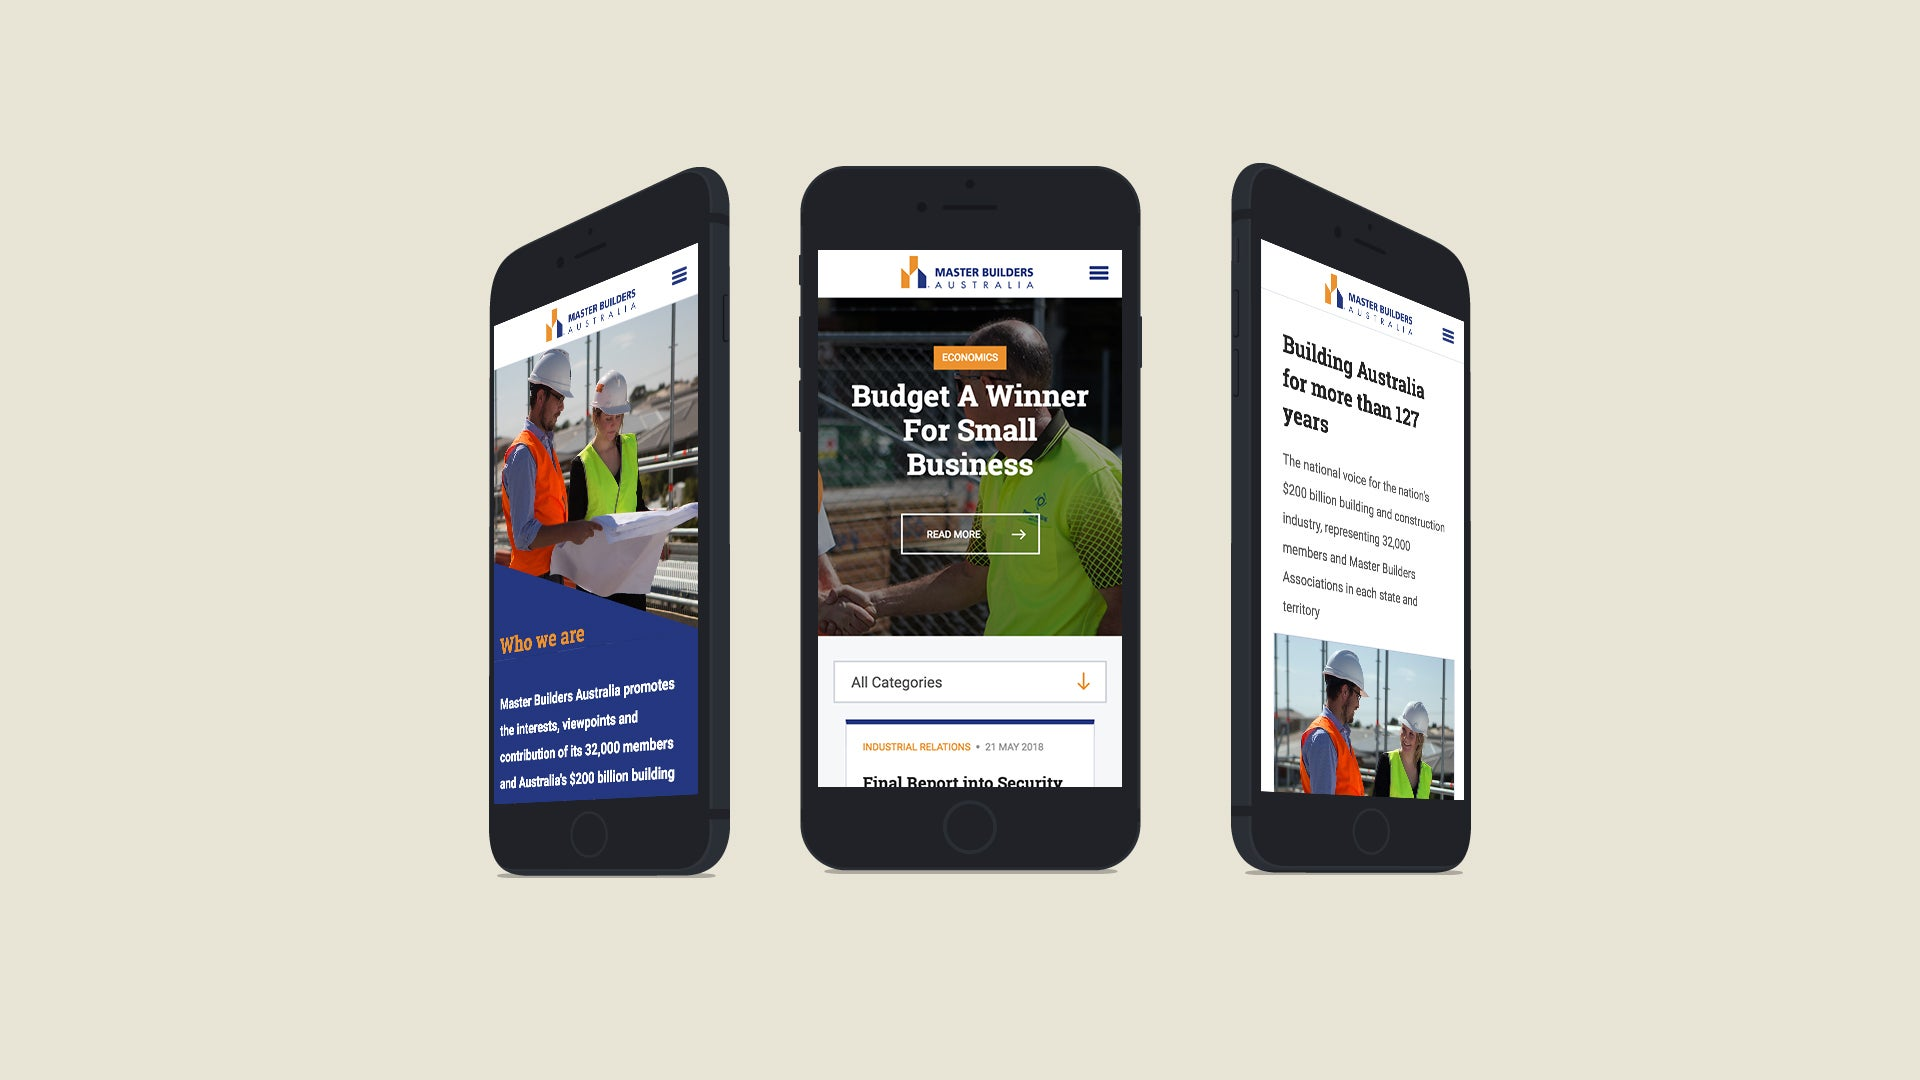 Master Builders website on a mobile device